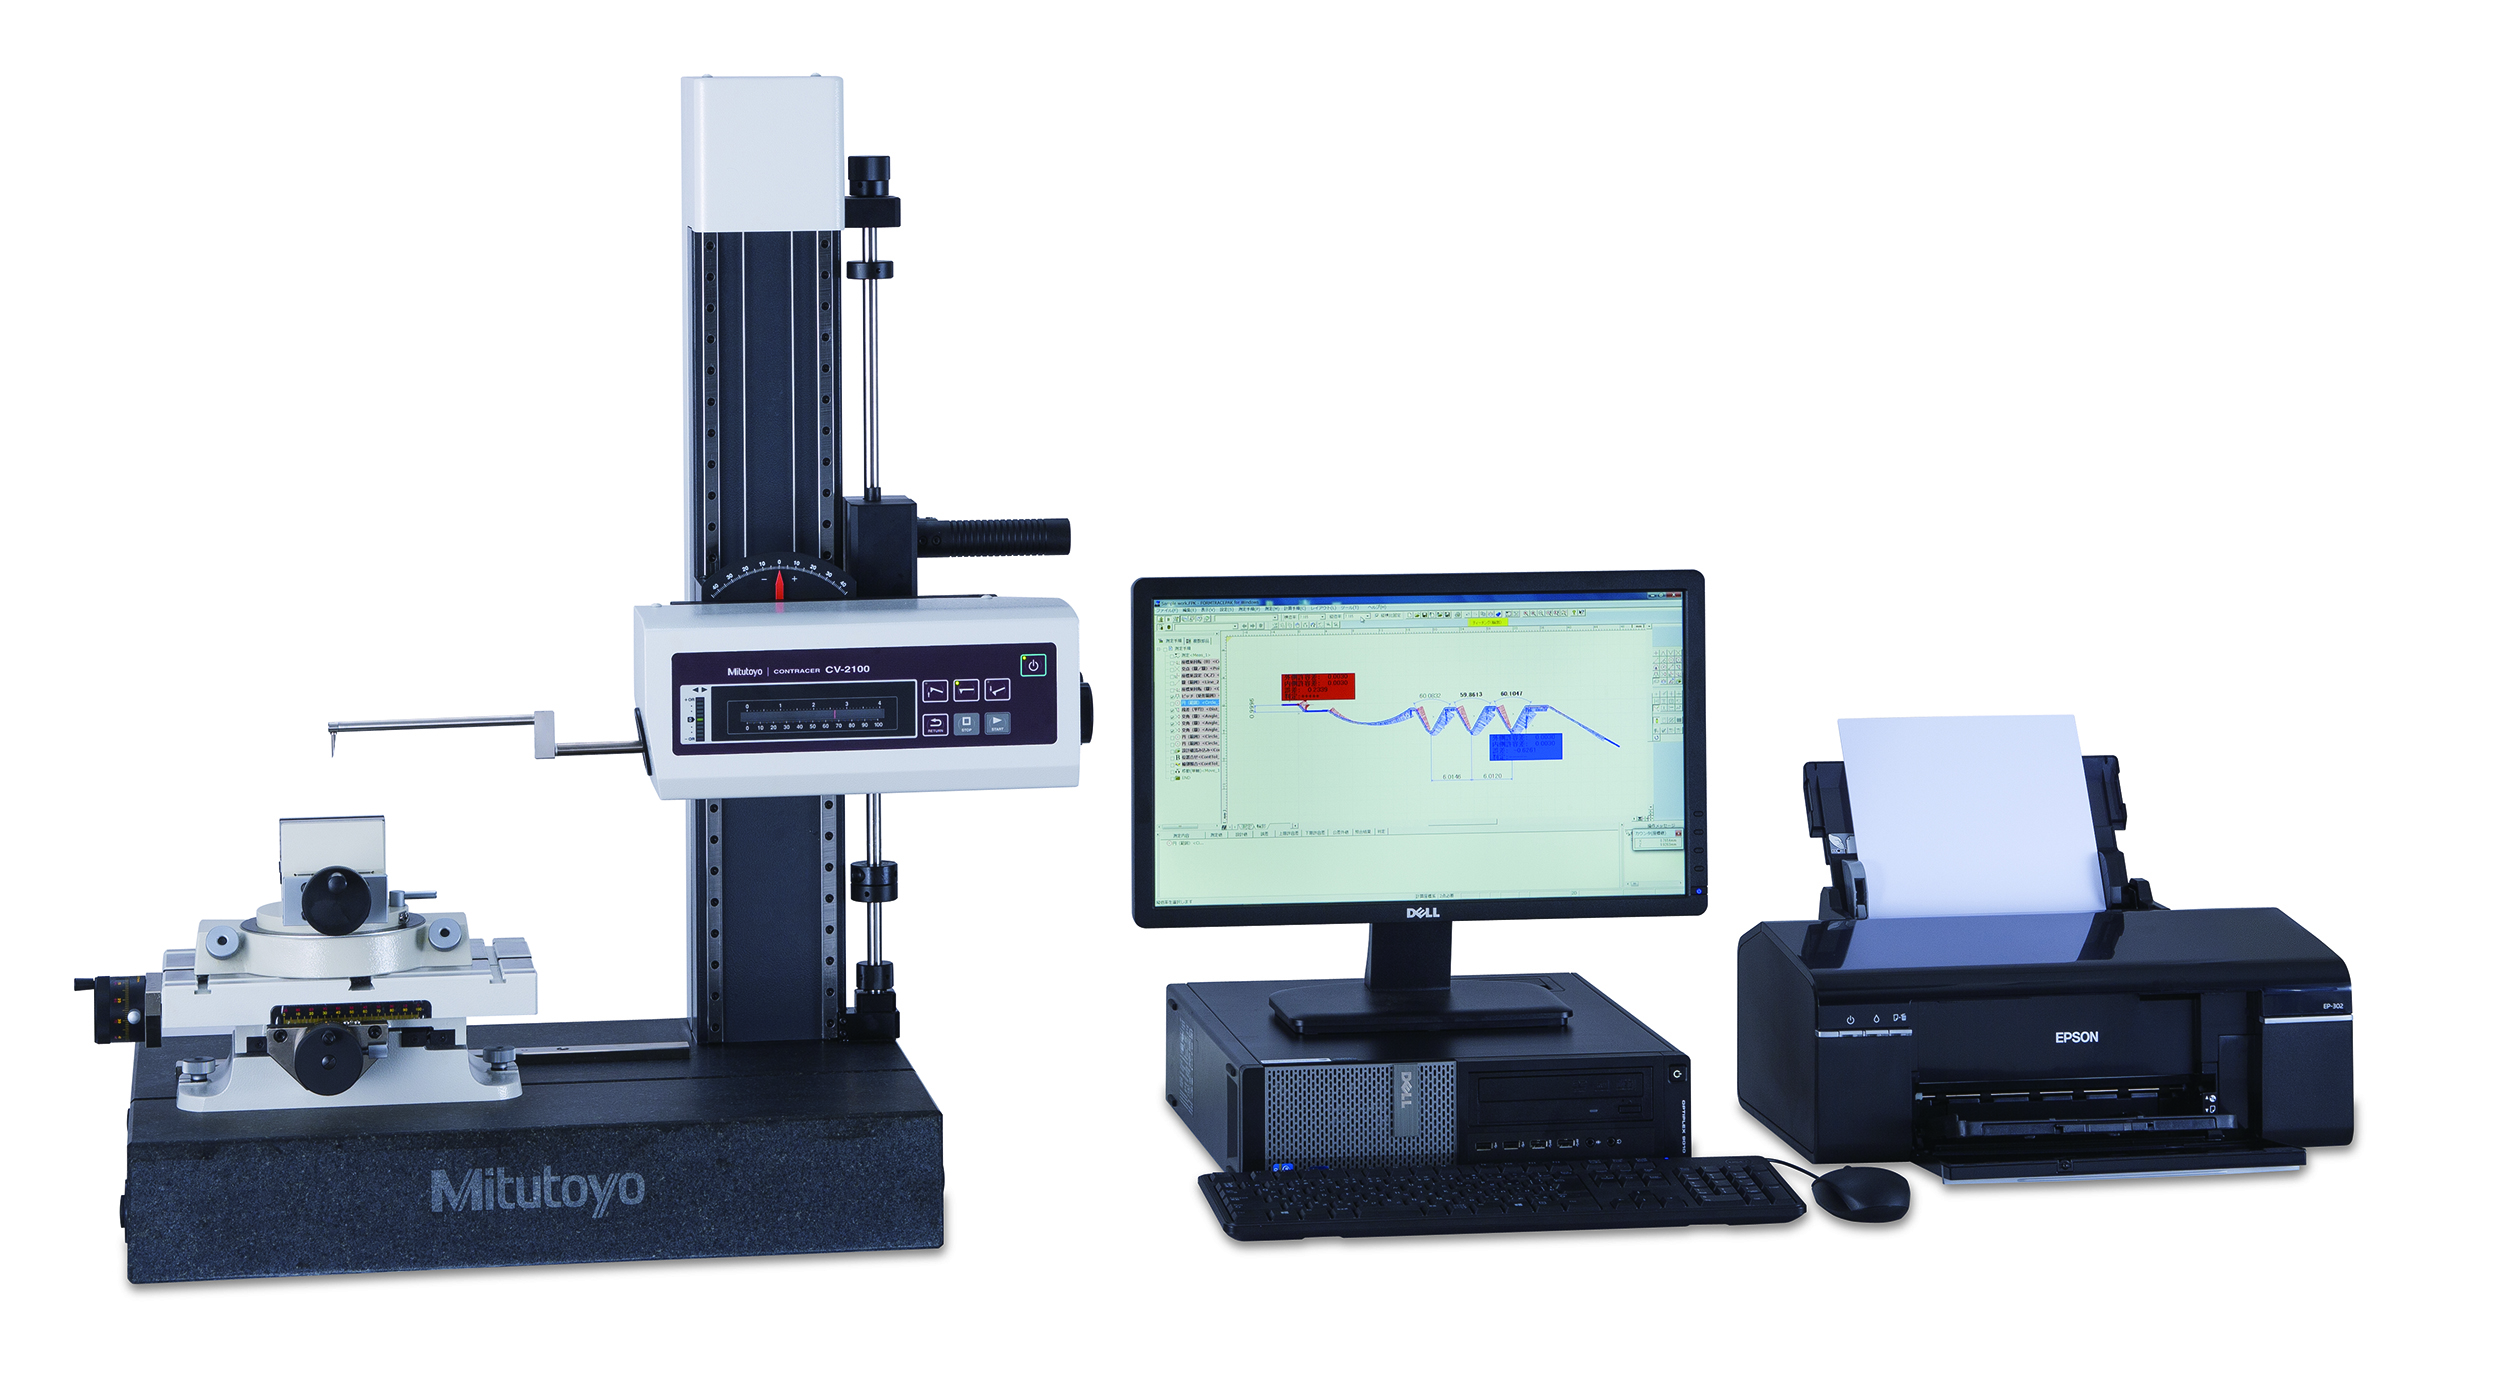 Mitutoyo Measuring Equipment : Advances in d metrology and automation